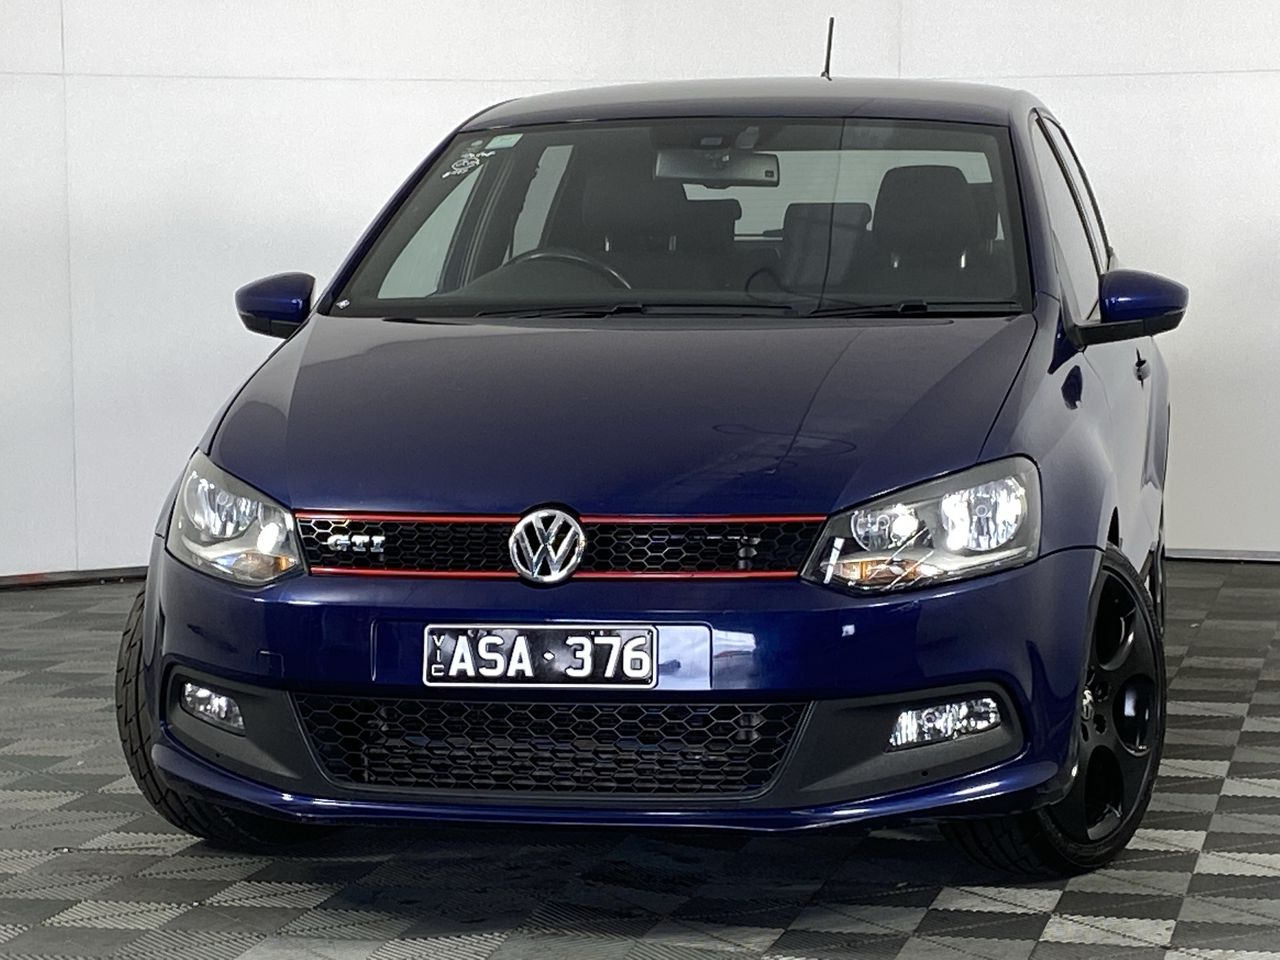 2013 Volkswagen Polo GTi 6R Automatic Hatchback